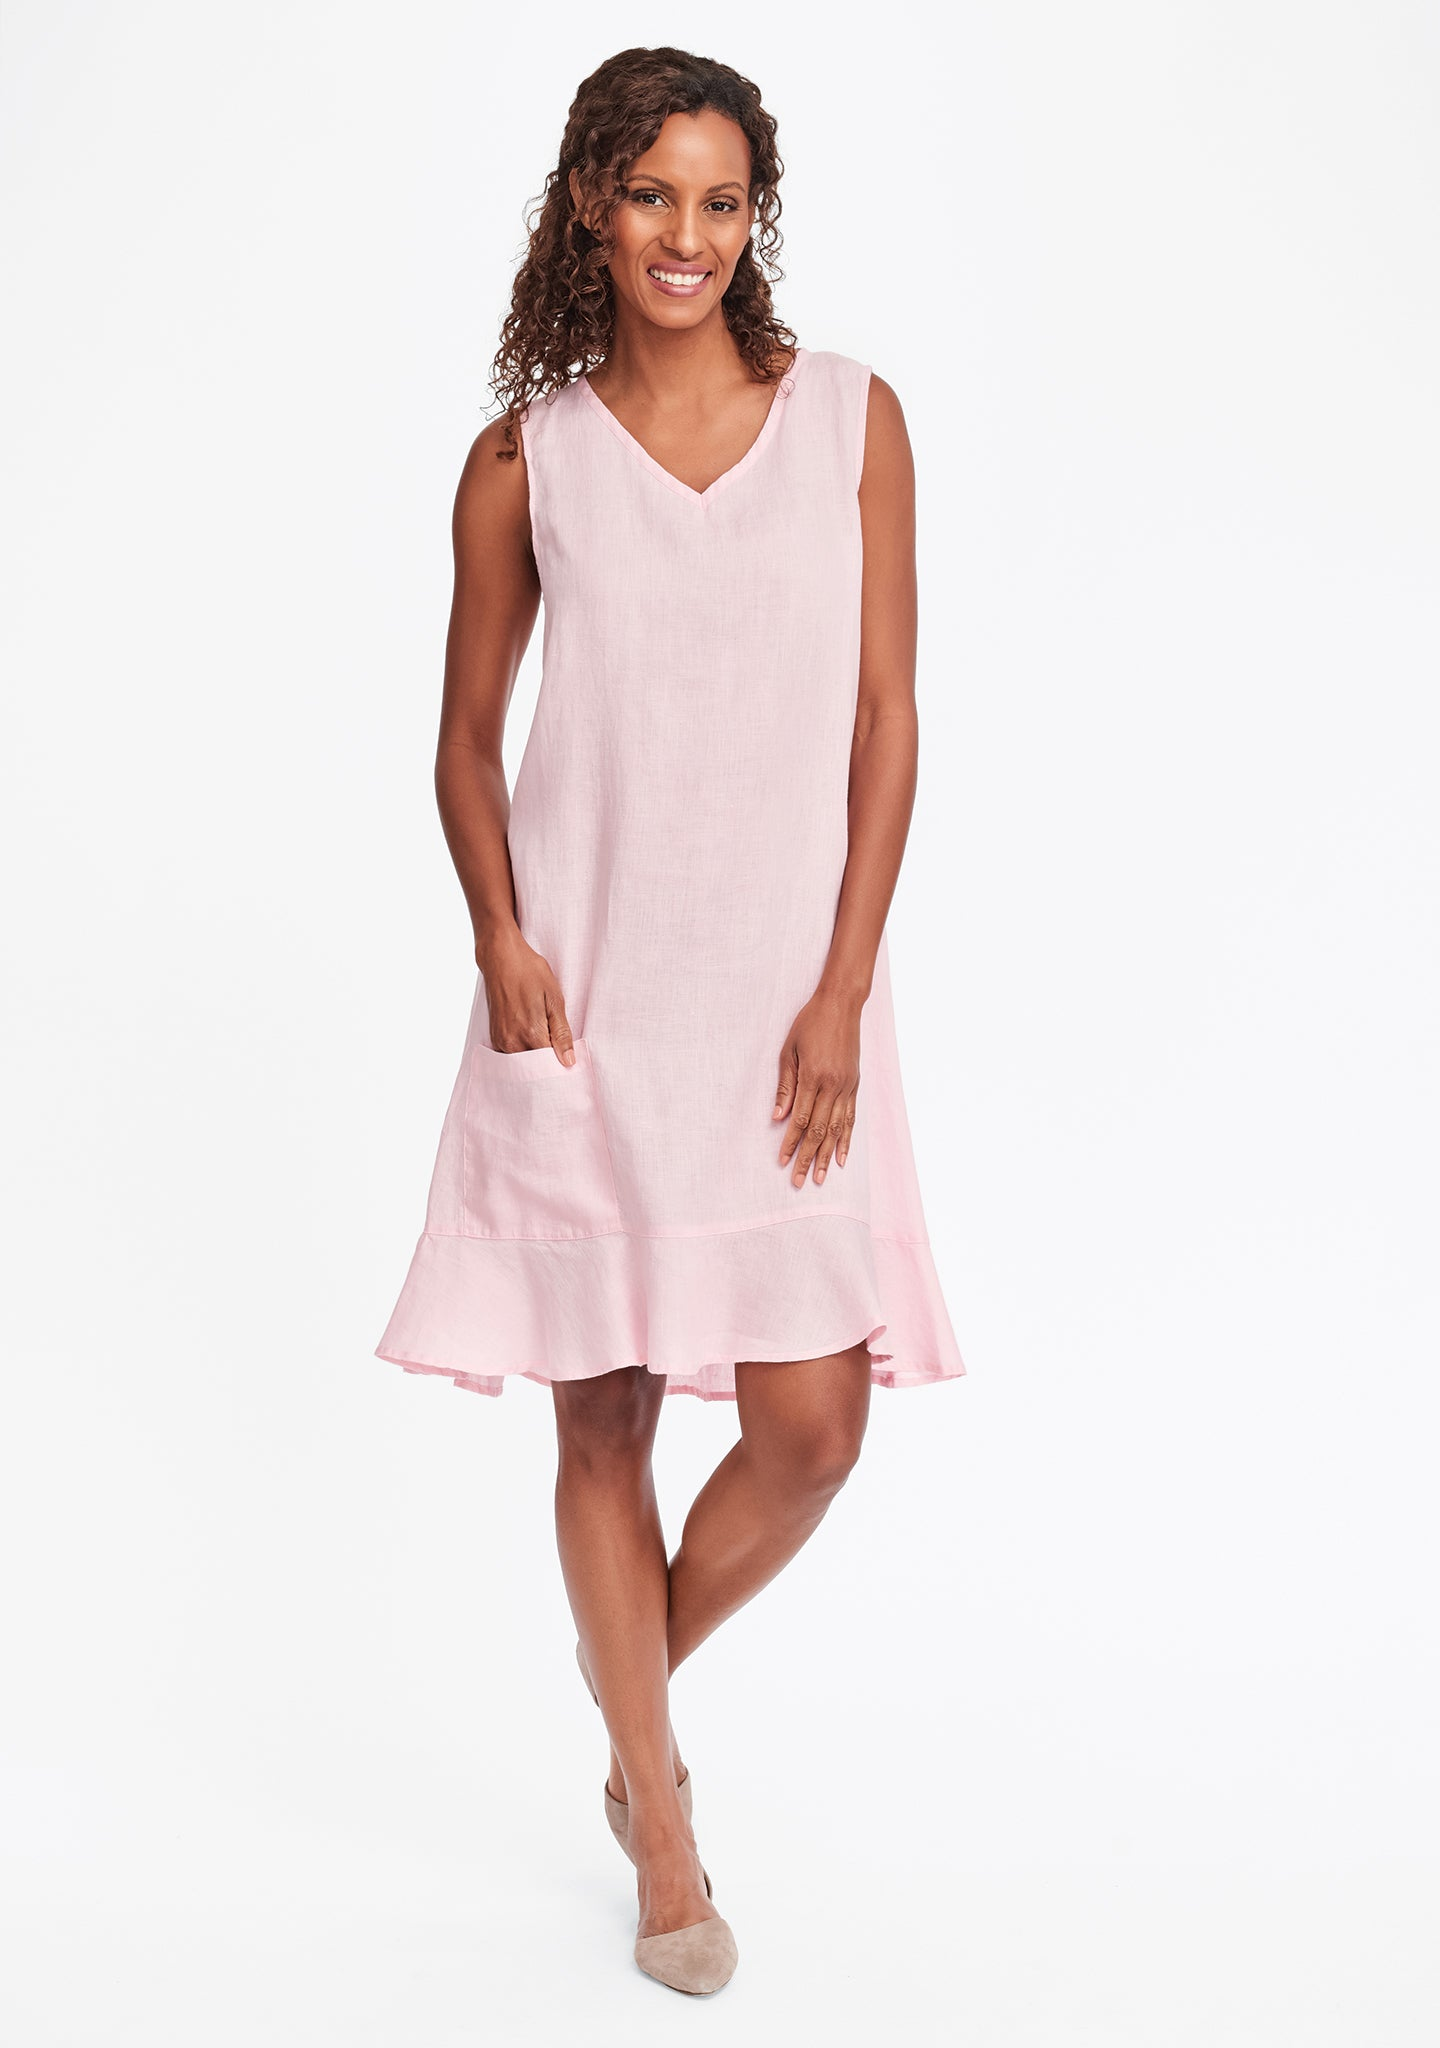 sweet dreams dress linen shift dress pink